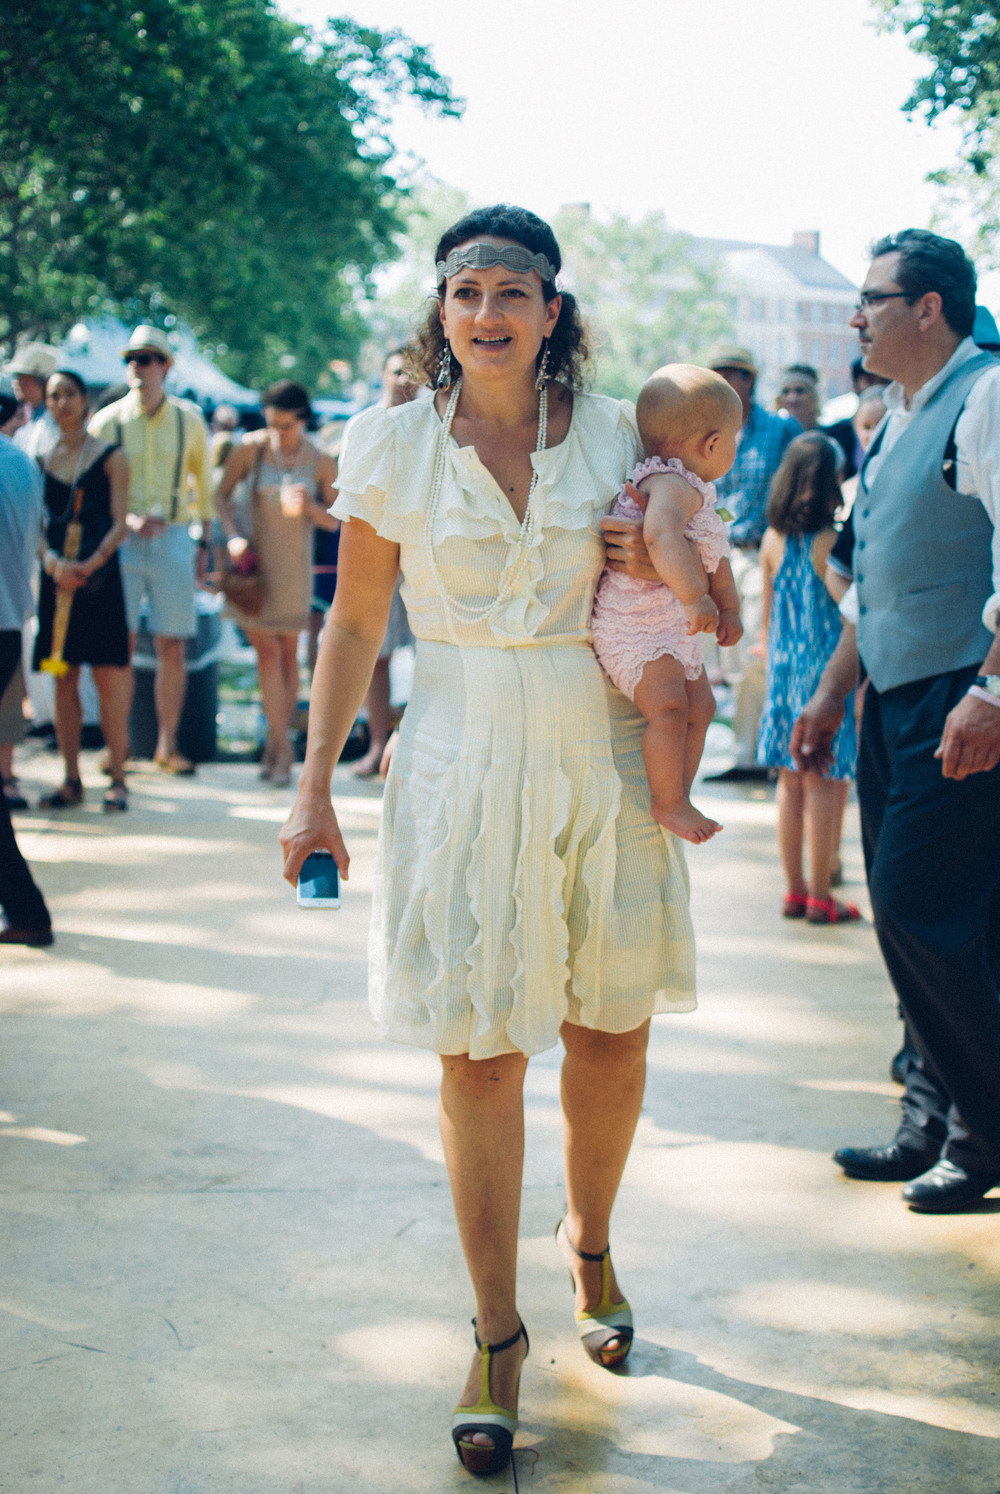 Jazz_Age_Lawn_Party_2015